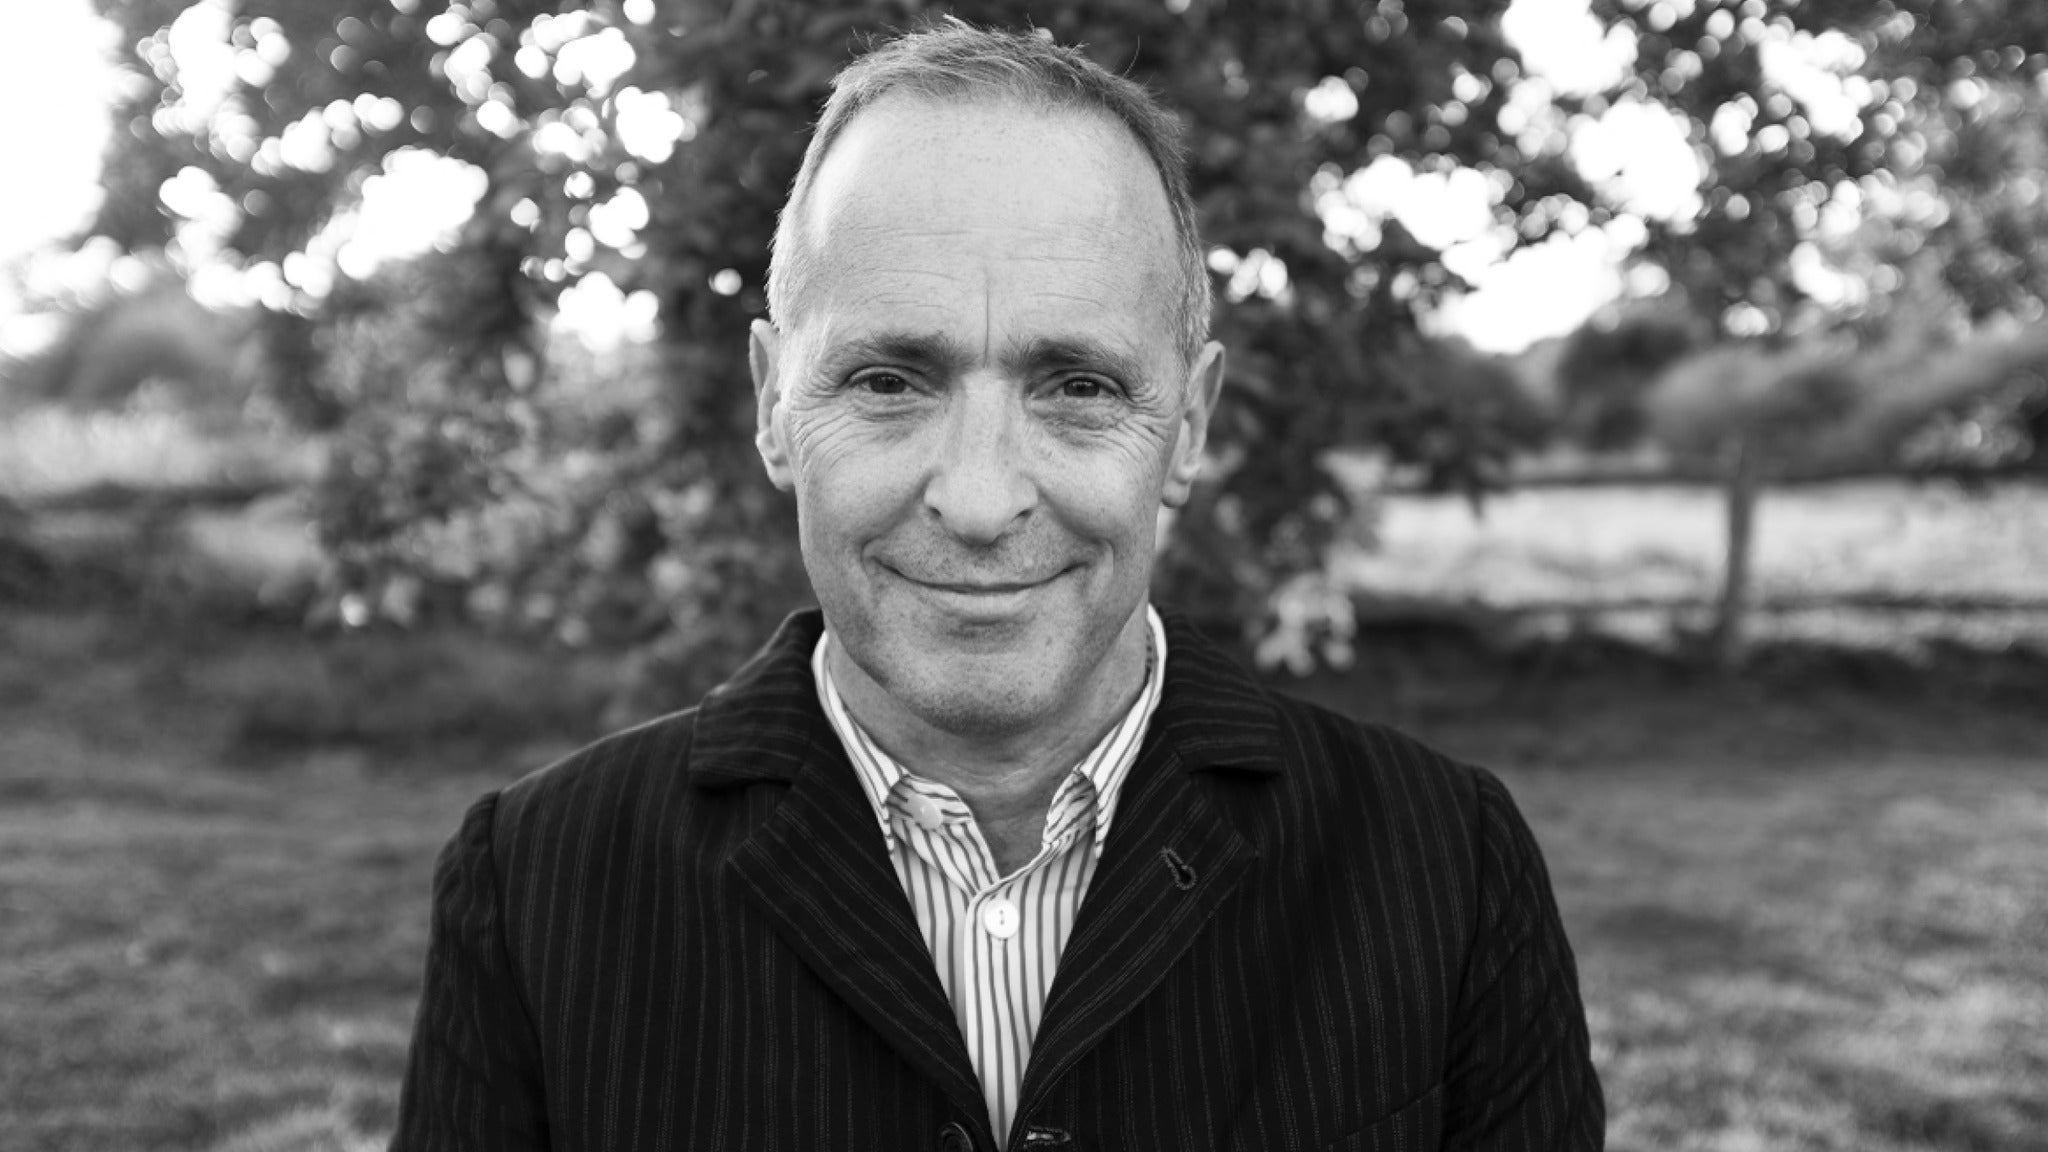 David Sedaris at Bob Hope Theatre